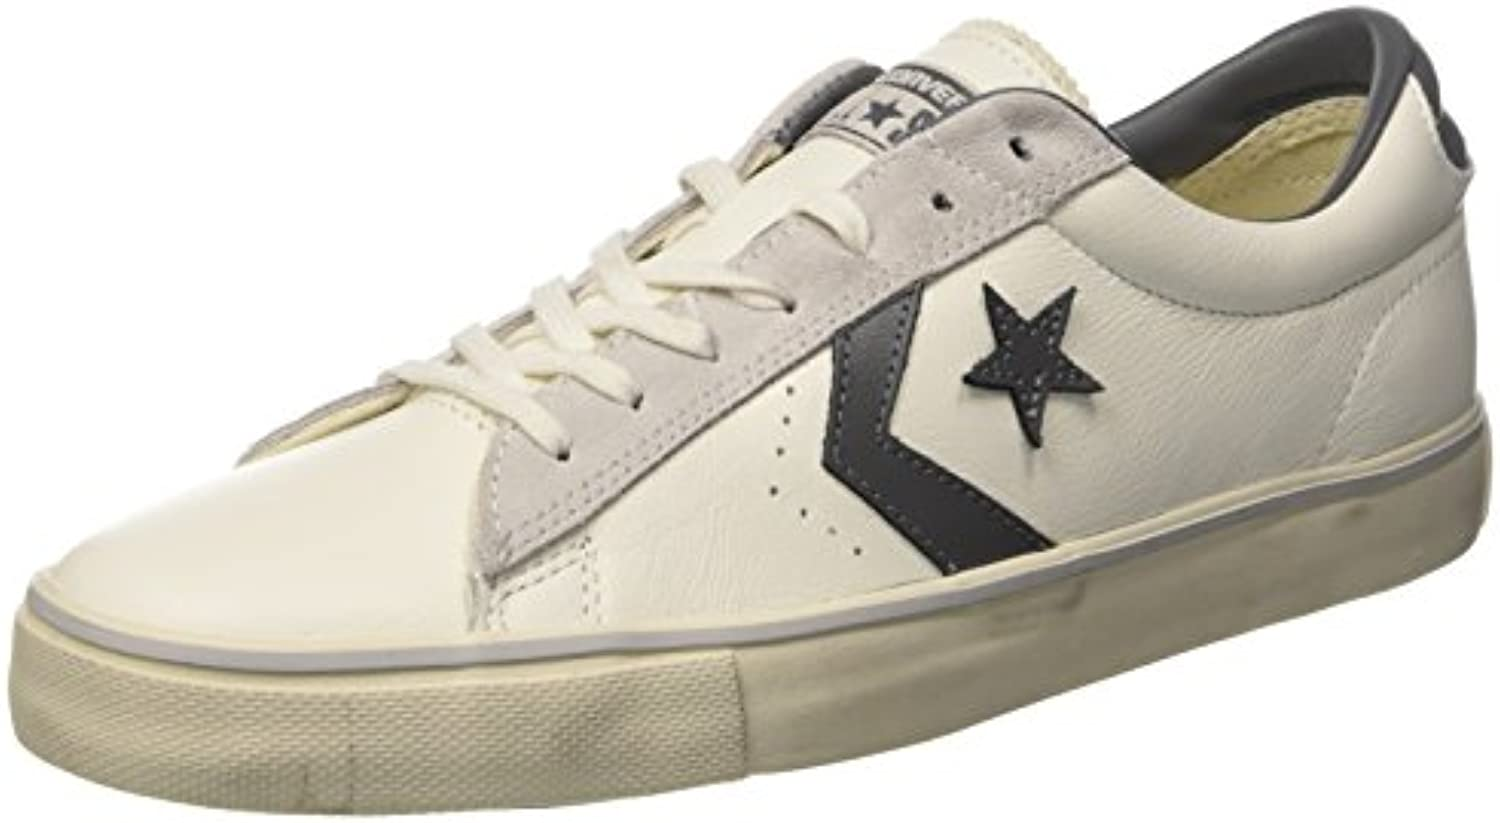 Converse Herren Pro Leather VULC Distressed OX Sneakers